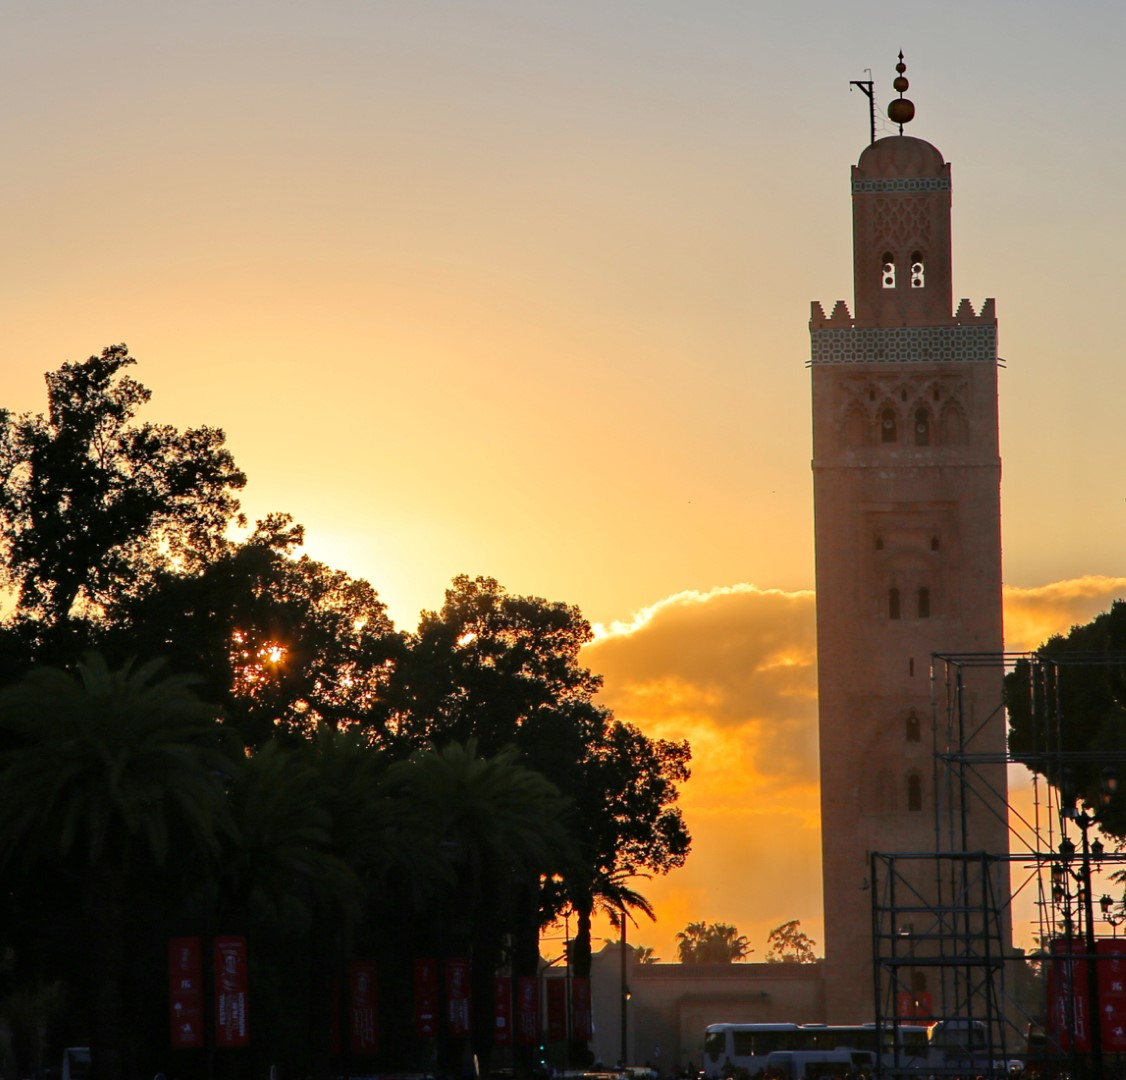 Donnavventura a Marrakech